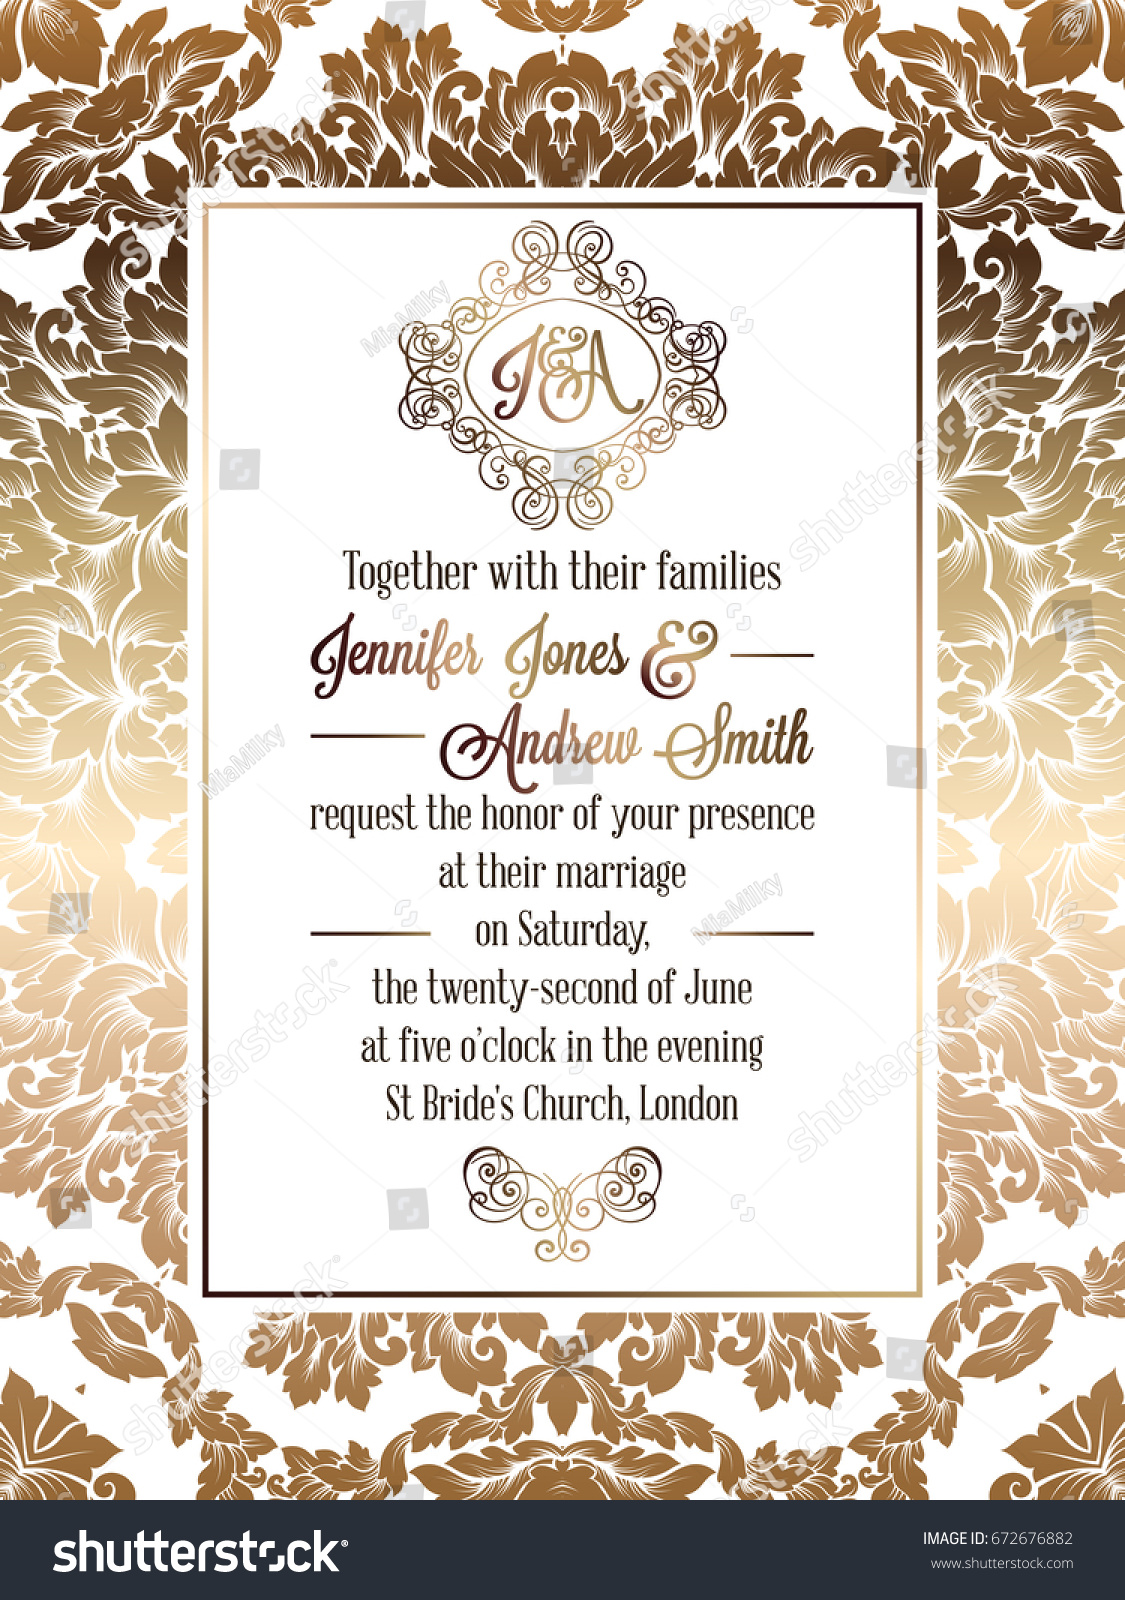 Vintage baroque style wedding invitation card em vetor stock vintage baroque style wedding invitation card template elegant formal design with damask background stopboris Image collections